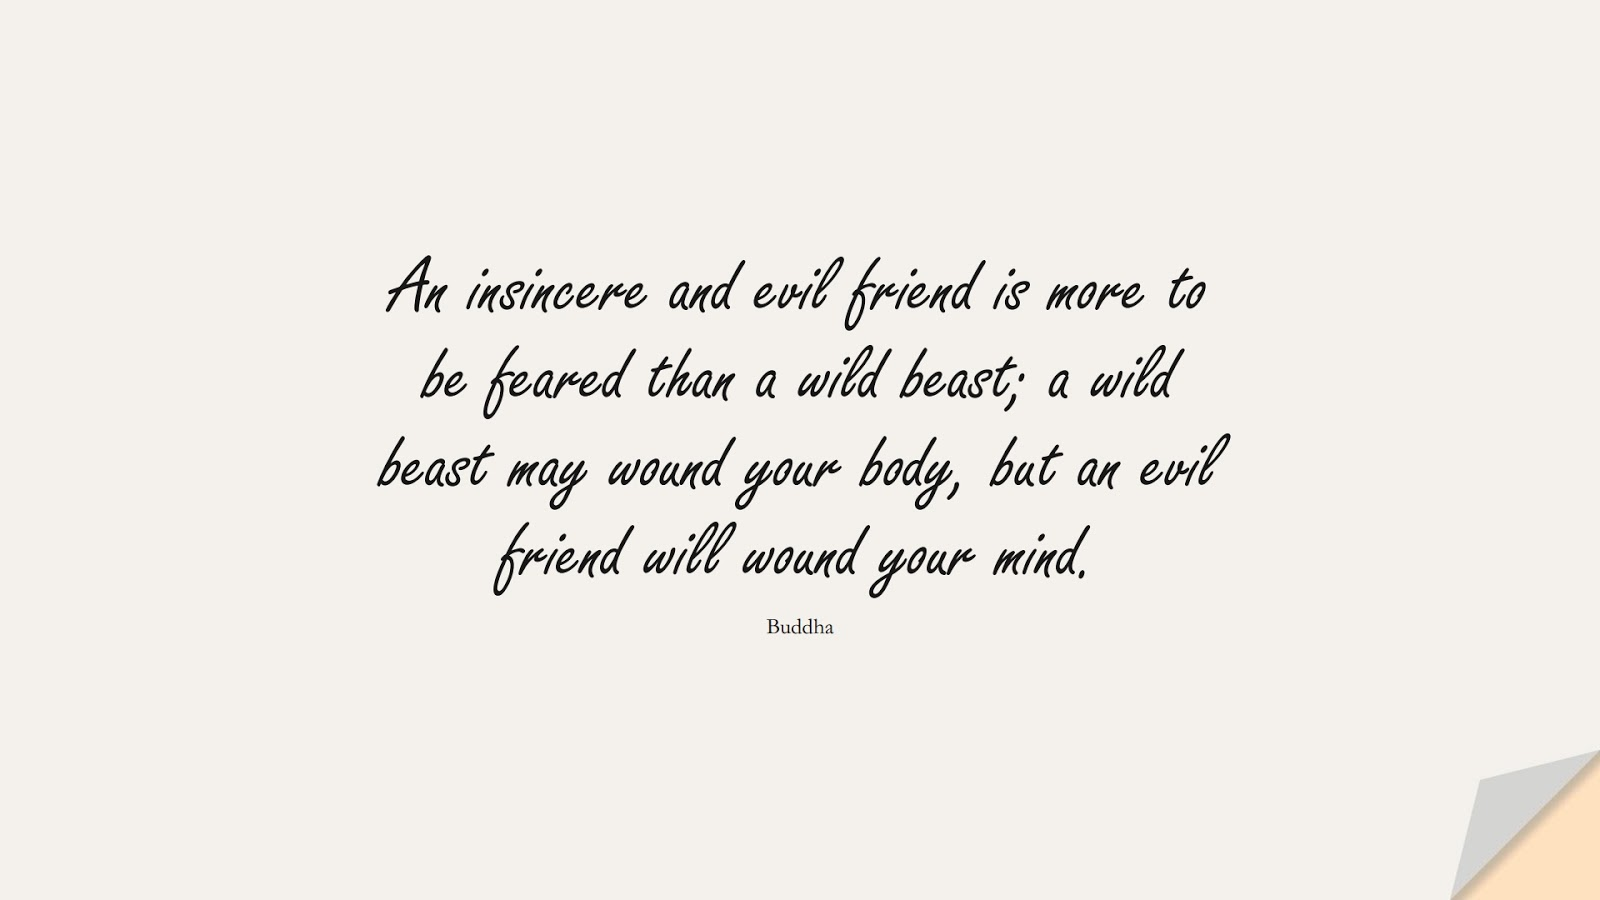 An insincere and evil friend is more to be feared than a wild beast; a wild beast may wound your body, but an evil friend will wound your mind. (Buddha);  #FriendshipQuotes